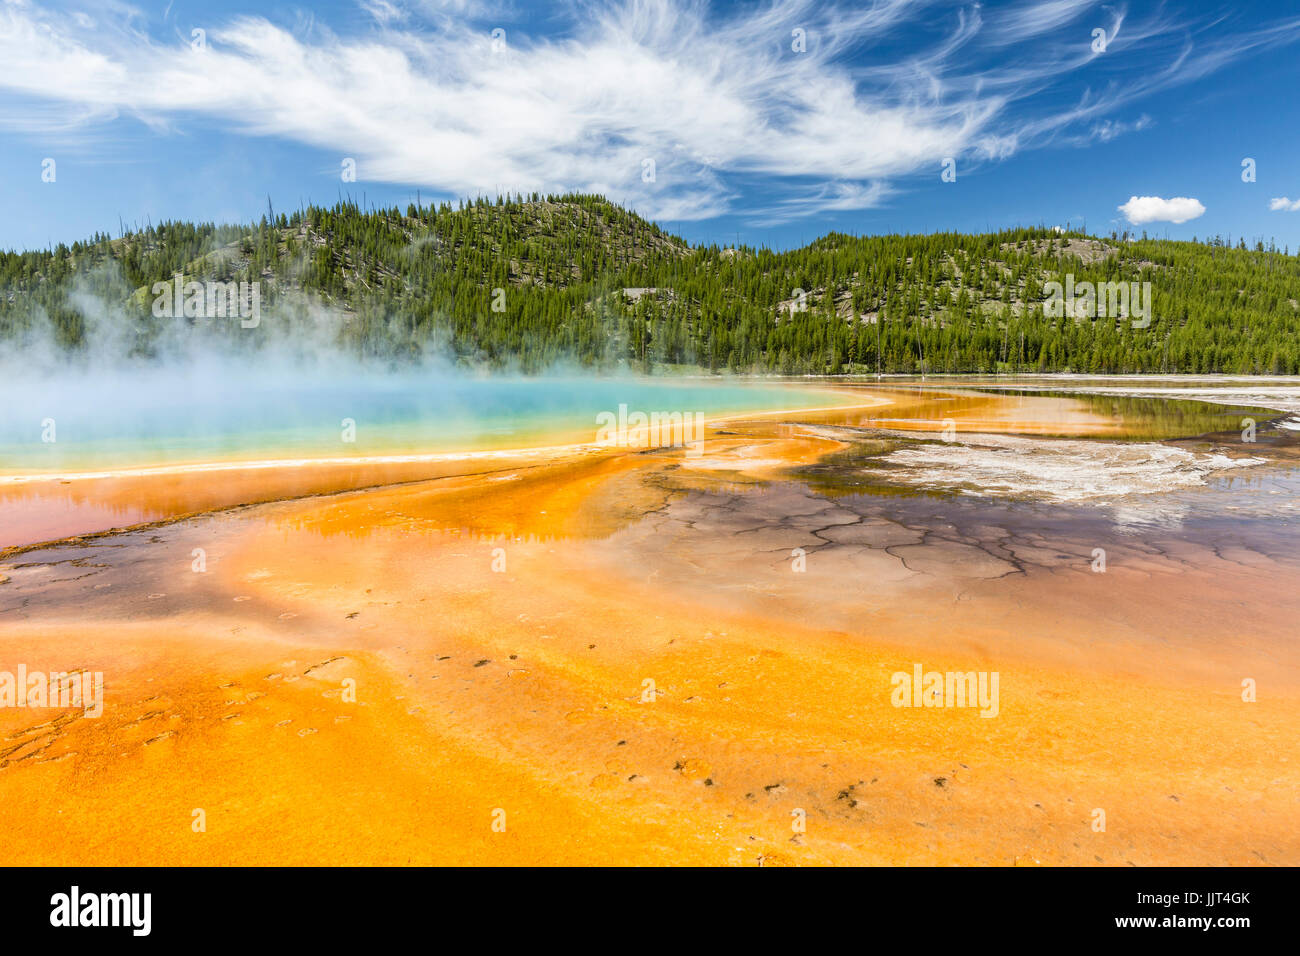 The vivid rainbow colors of the Grand Prismatic Spring in Yellowstone National Park, Wyoming - Stock Image